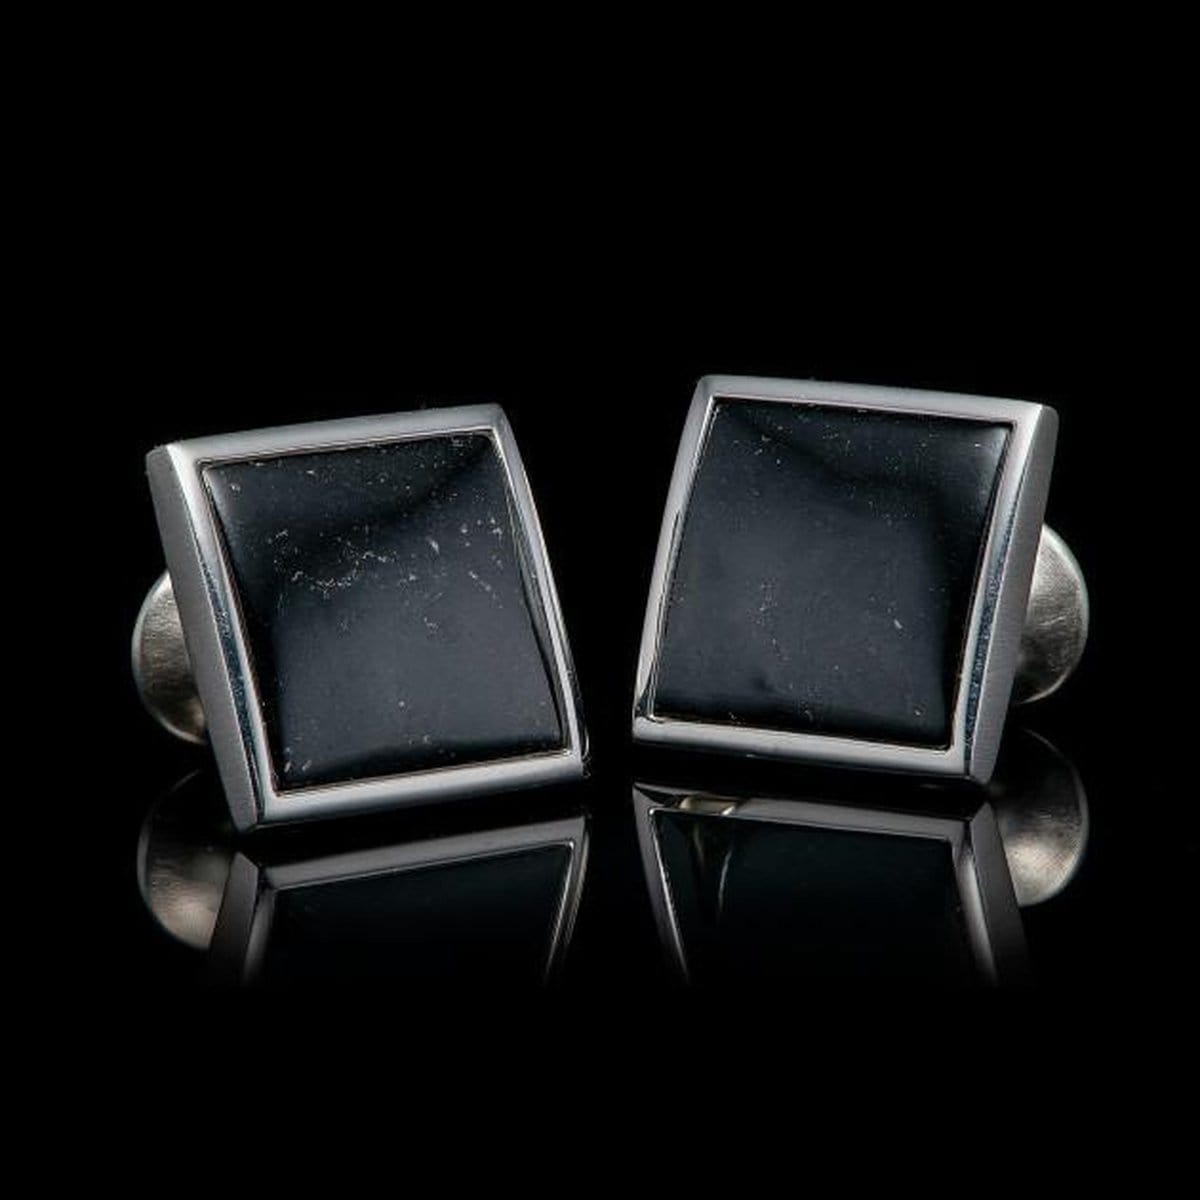 Men's Black Jade Duo Cuff Links - CL BLK J-William Henry-Renee Taylor Gallery